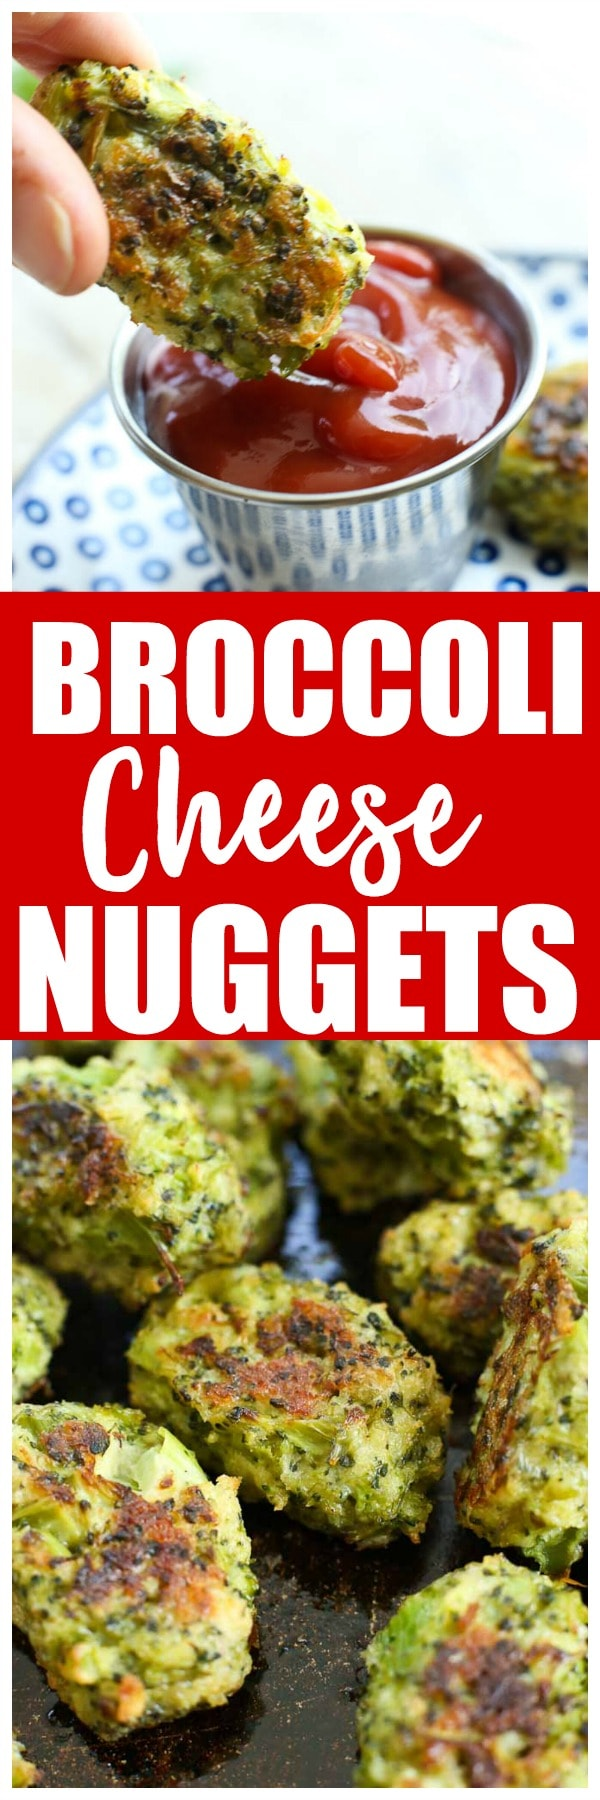 Broccoli cheese bites nuggets recipe | toddler | vegetable | side dish | healthy